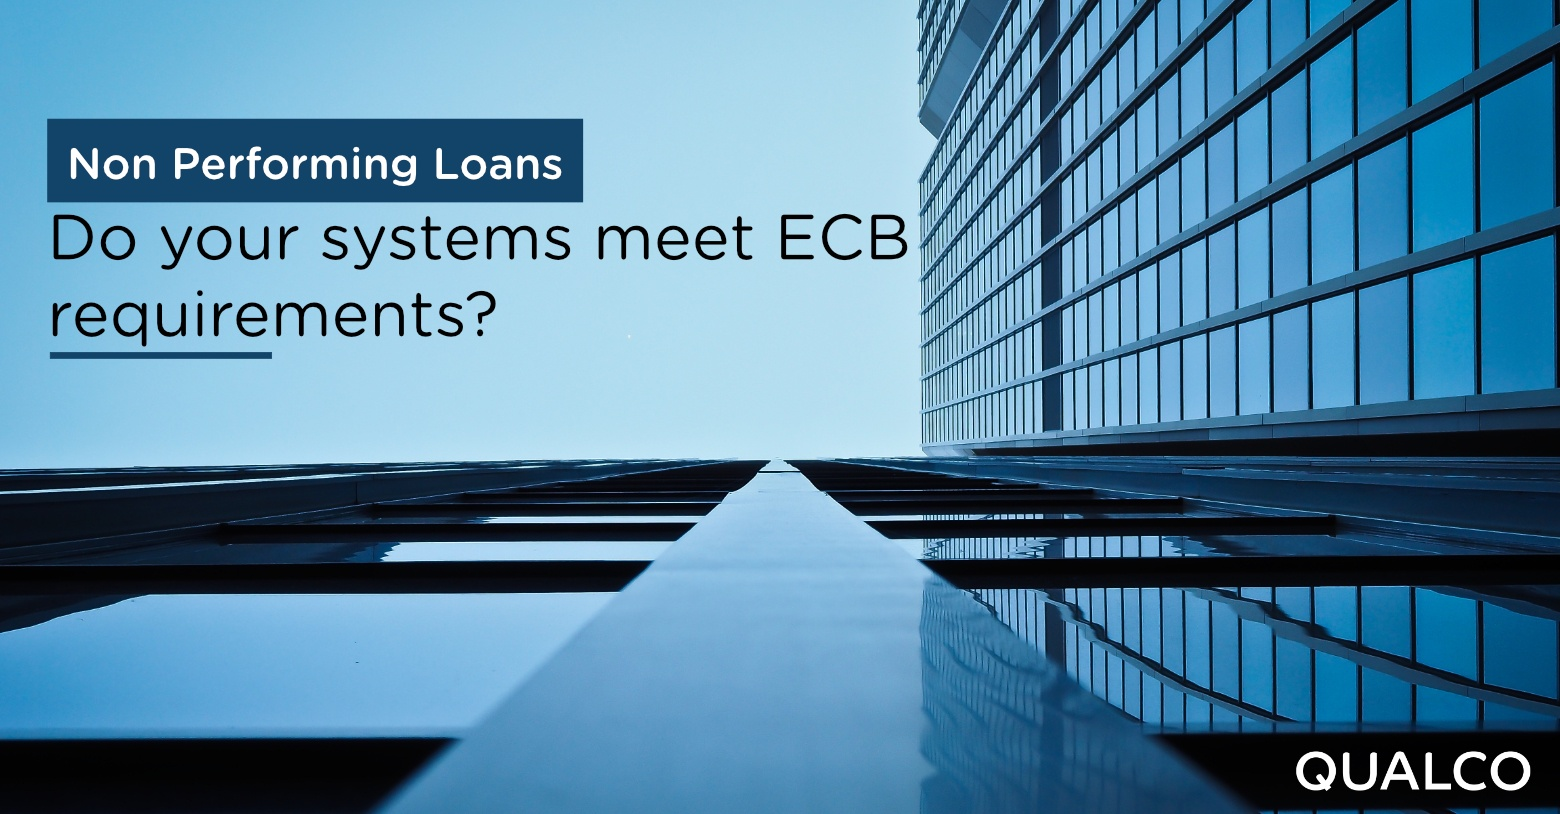 Do your systems meet ECB requirements?